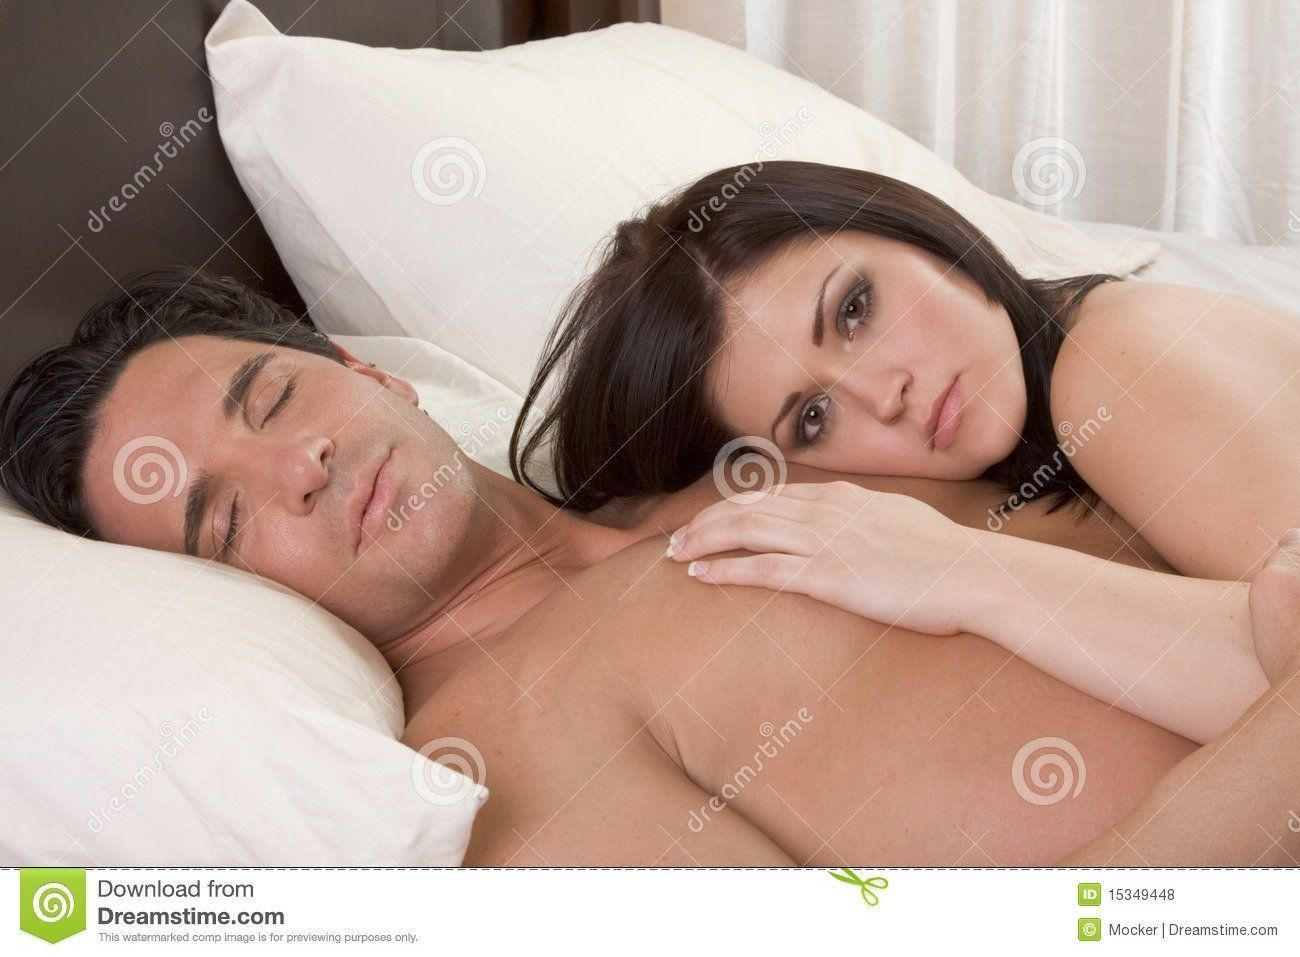 Not bed in naked couples congratulate, excellent